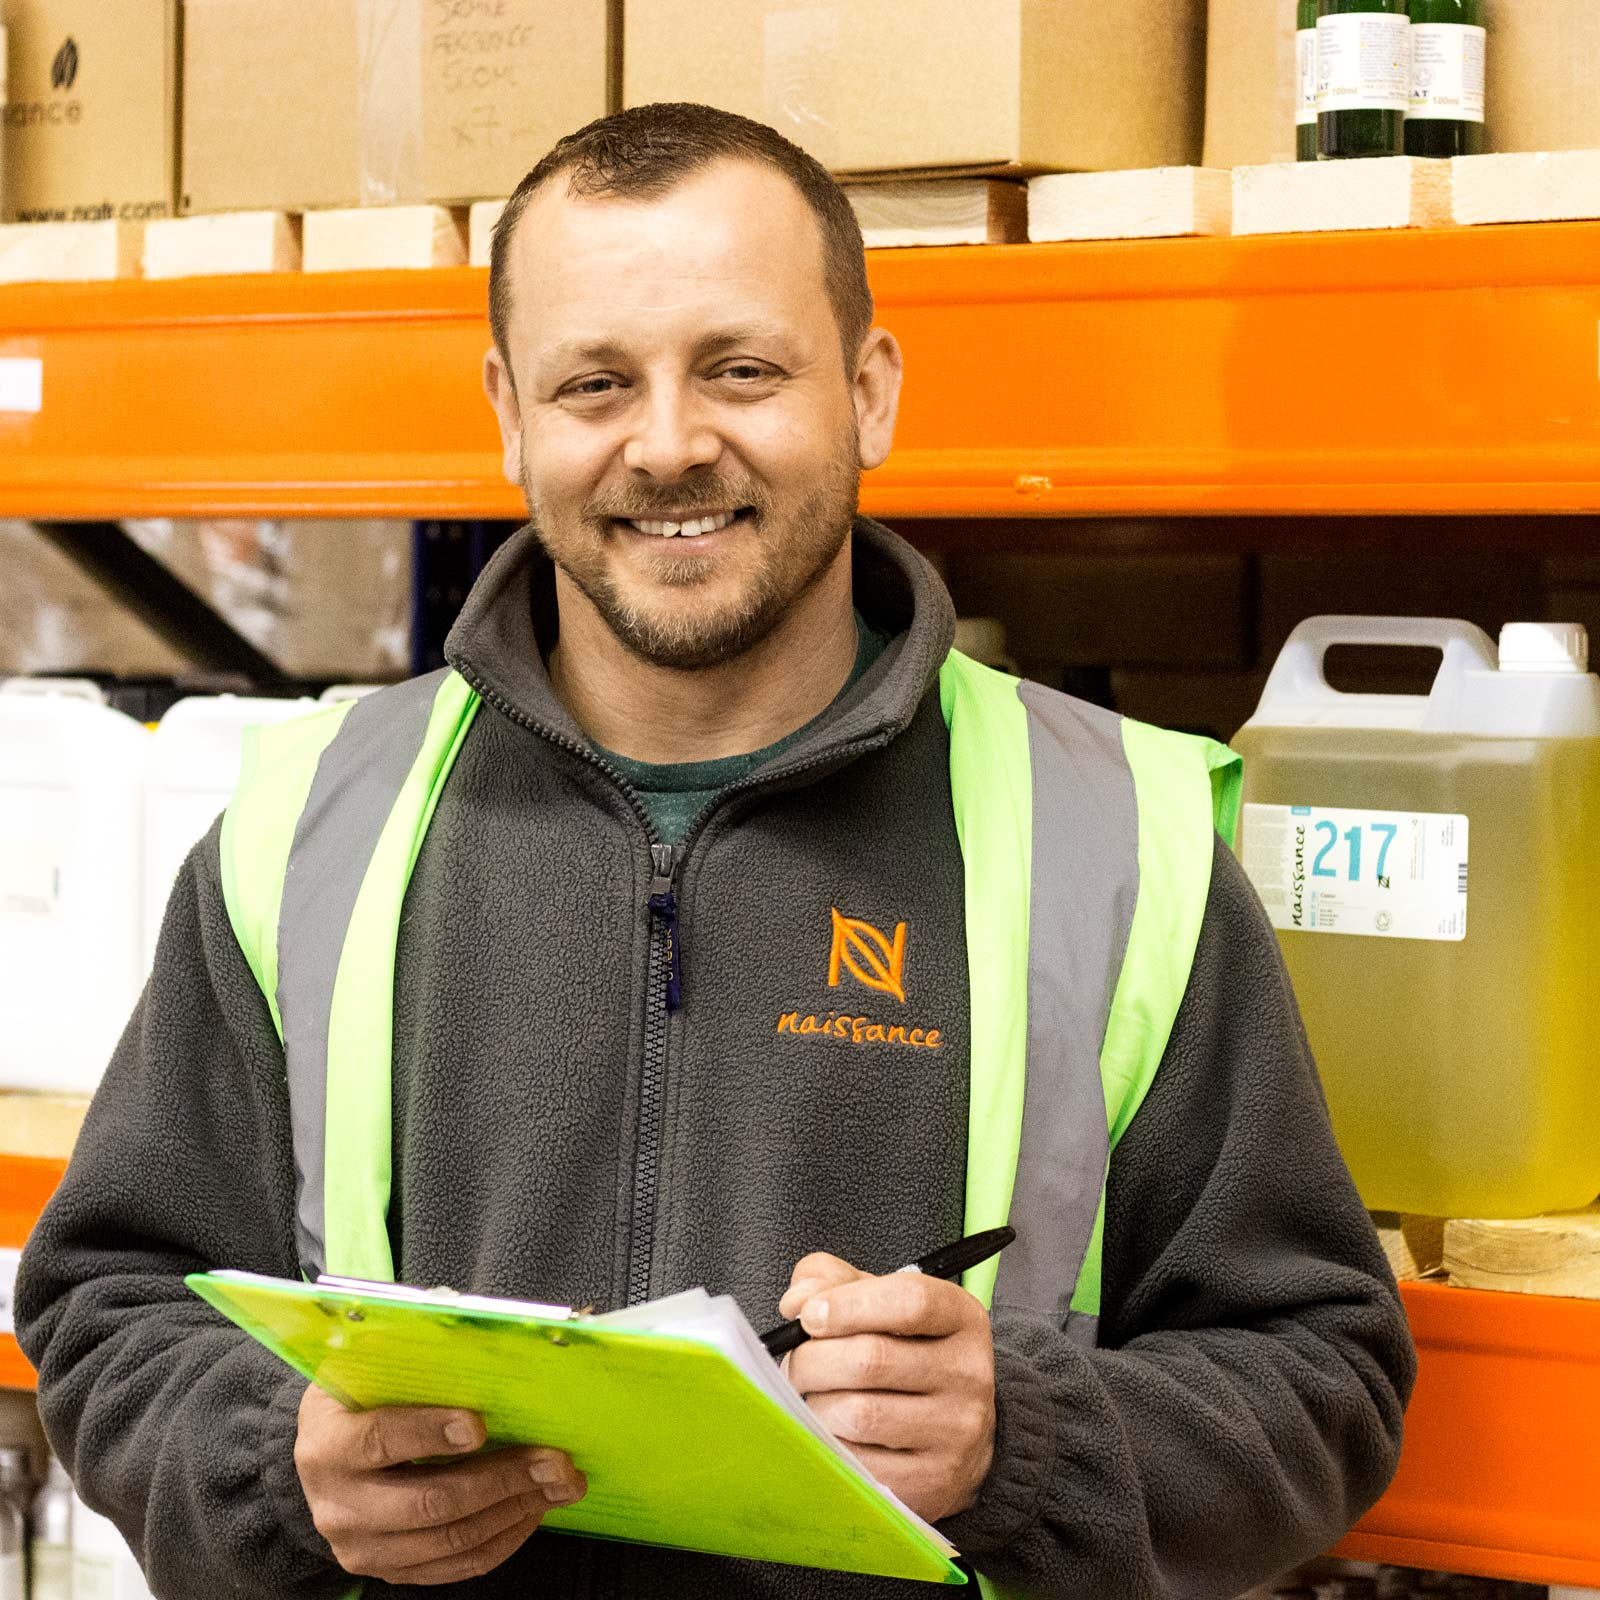 """Chris Logan Warehouse Operative  """"My role within the warehouse team has been interesting and varied since I joined Naissance in December 2017. From picking and packing orders for both our fulfilment centres (UK and Germany) and helping with stock taking, stock rotation and location assignment. I now primarily look after the orders for our wholesale customer base and liaise with various teams within the business, to ensure that orders are fulfilled as efficiently as possible. What I like about working at Naissance is working with some great people. The business is constantly moving forward and being part of such a rapidly changing company is both challenging and rewarding.""""  Favourite product: """"Argan and hemp oil, both are great for your beard & skin"""""""